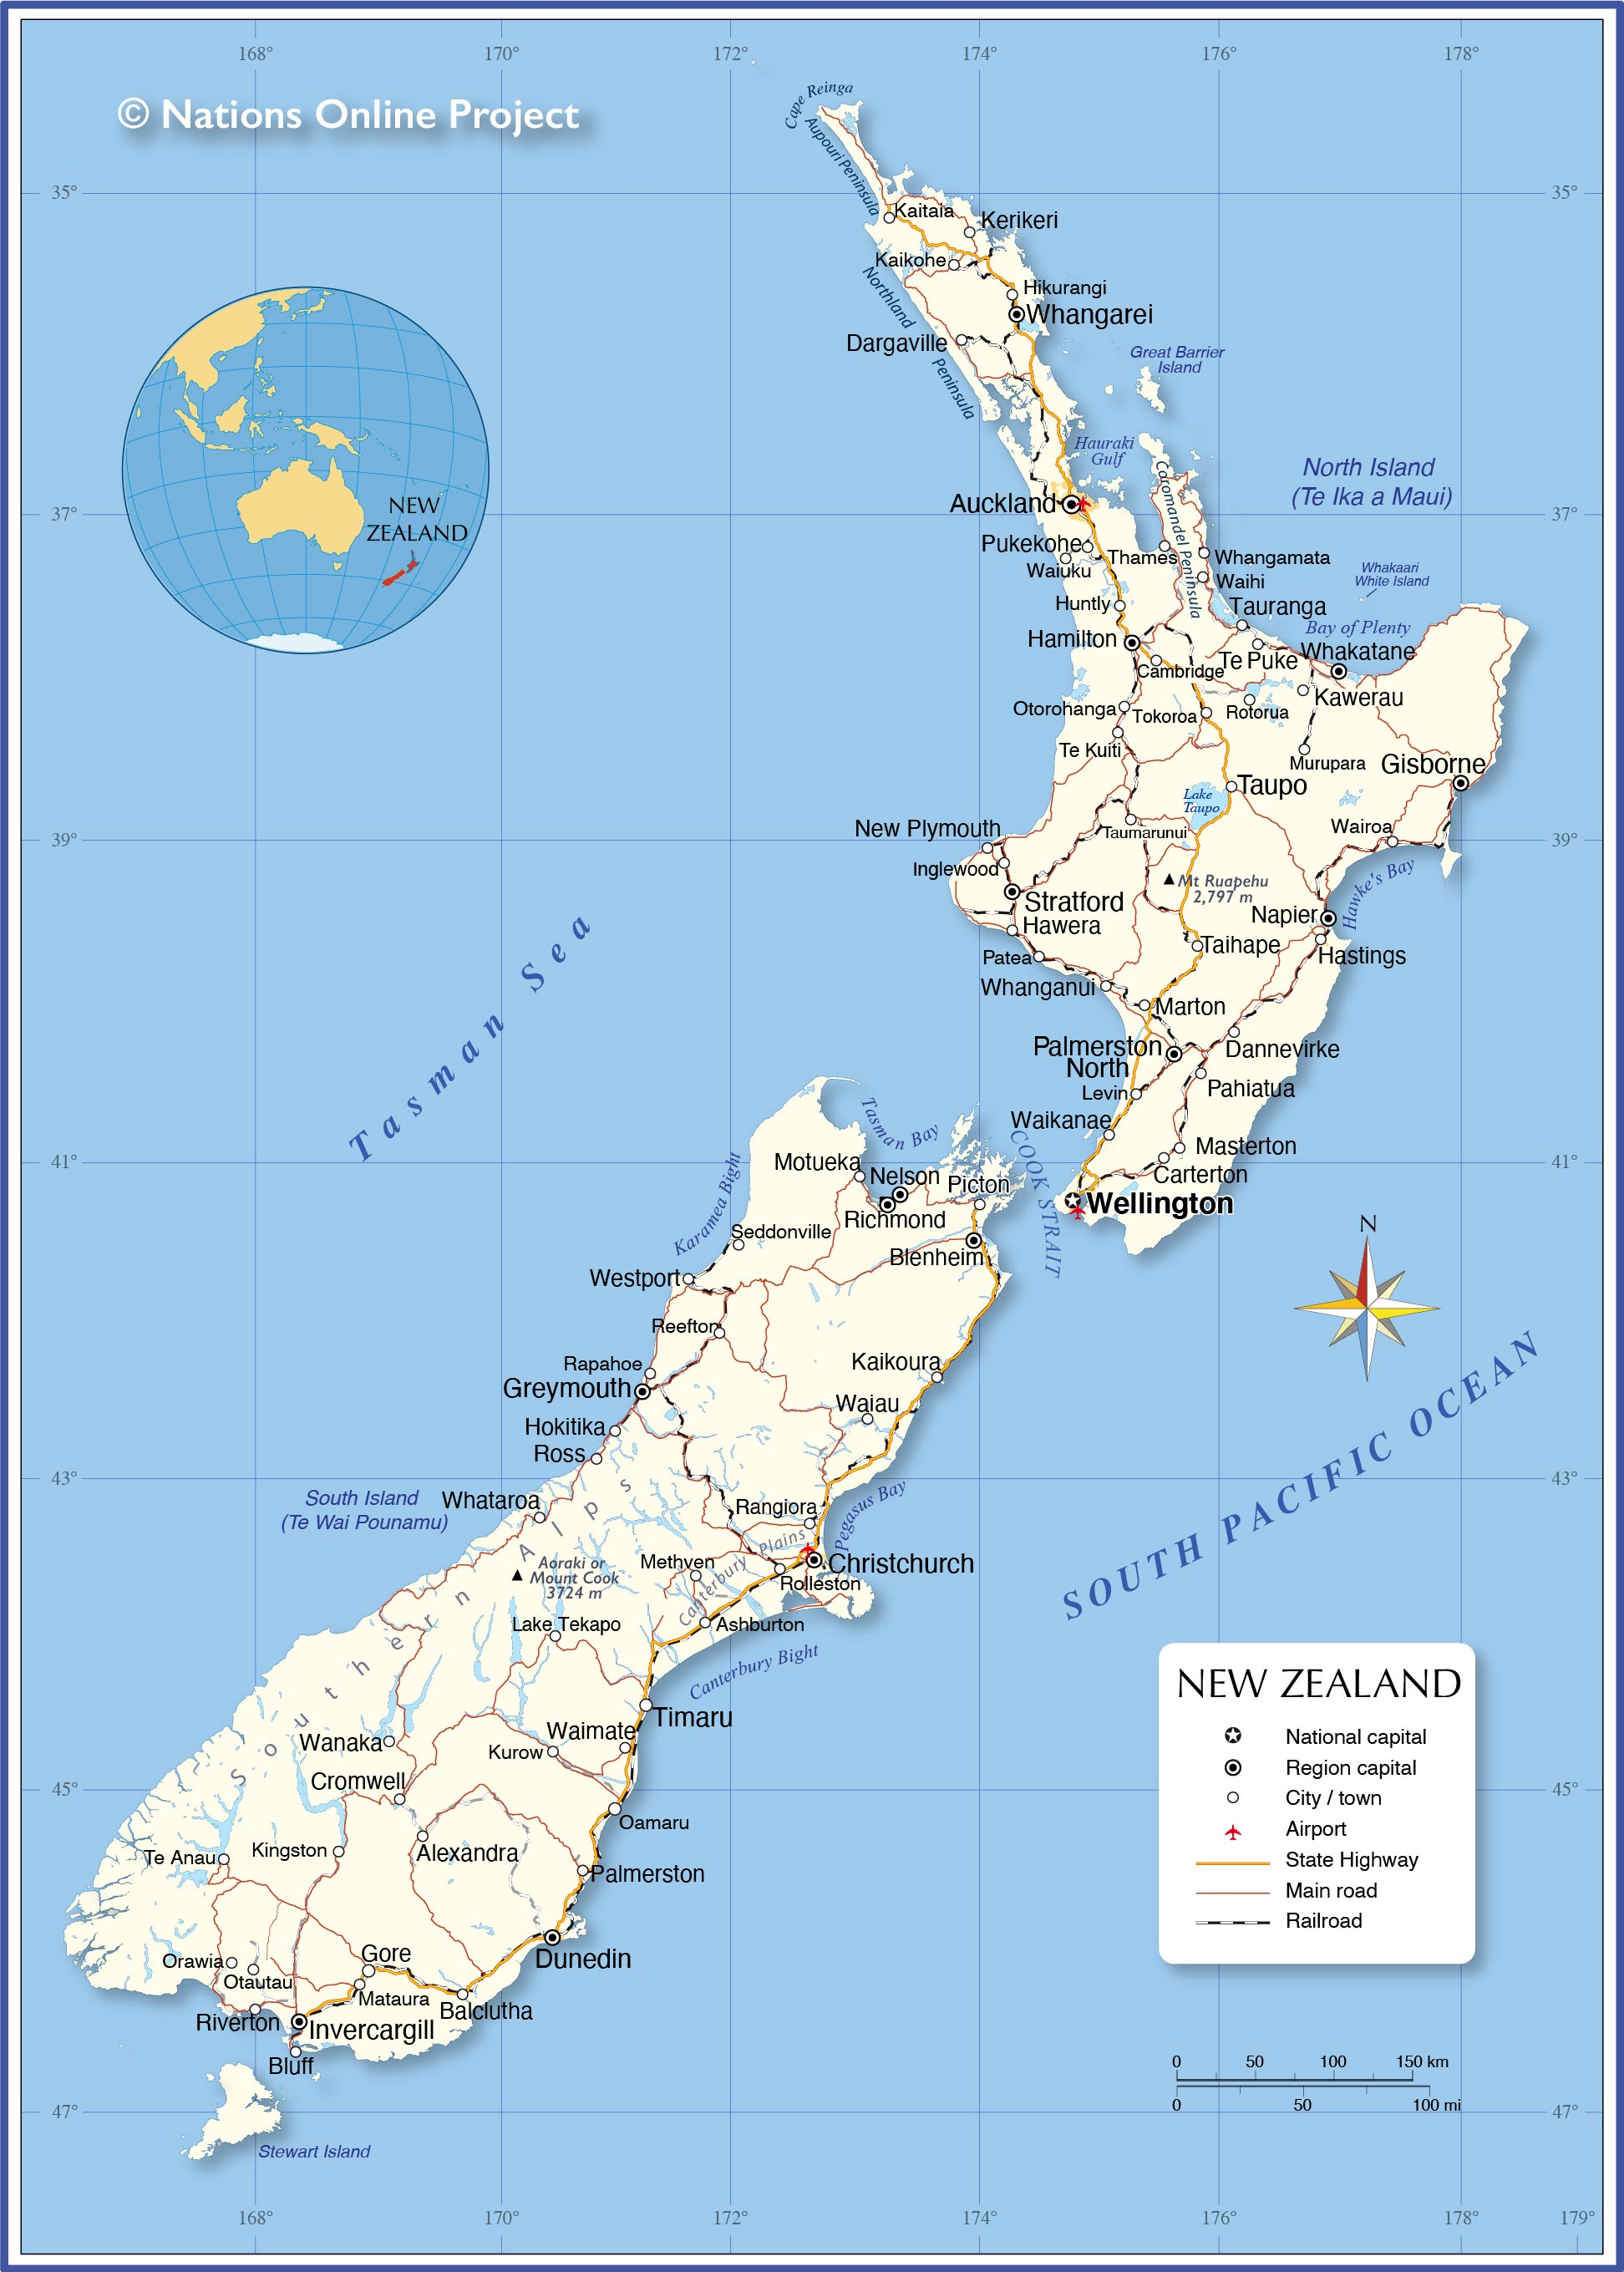 new zealand lakes map Political Map Of New Zealand Nations Online Project new zealand lakes map